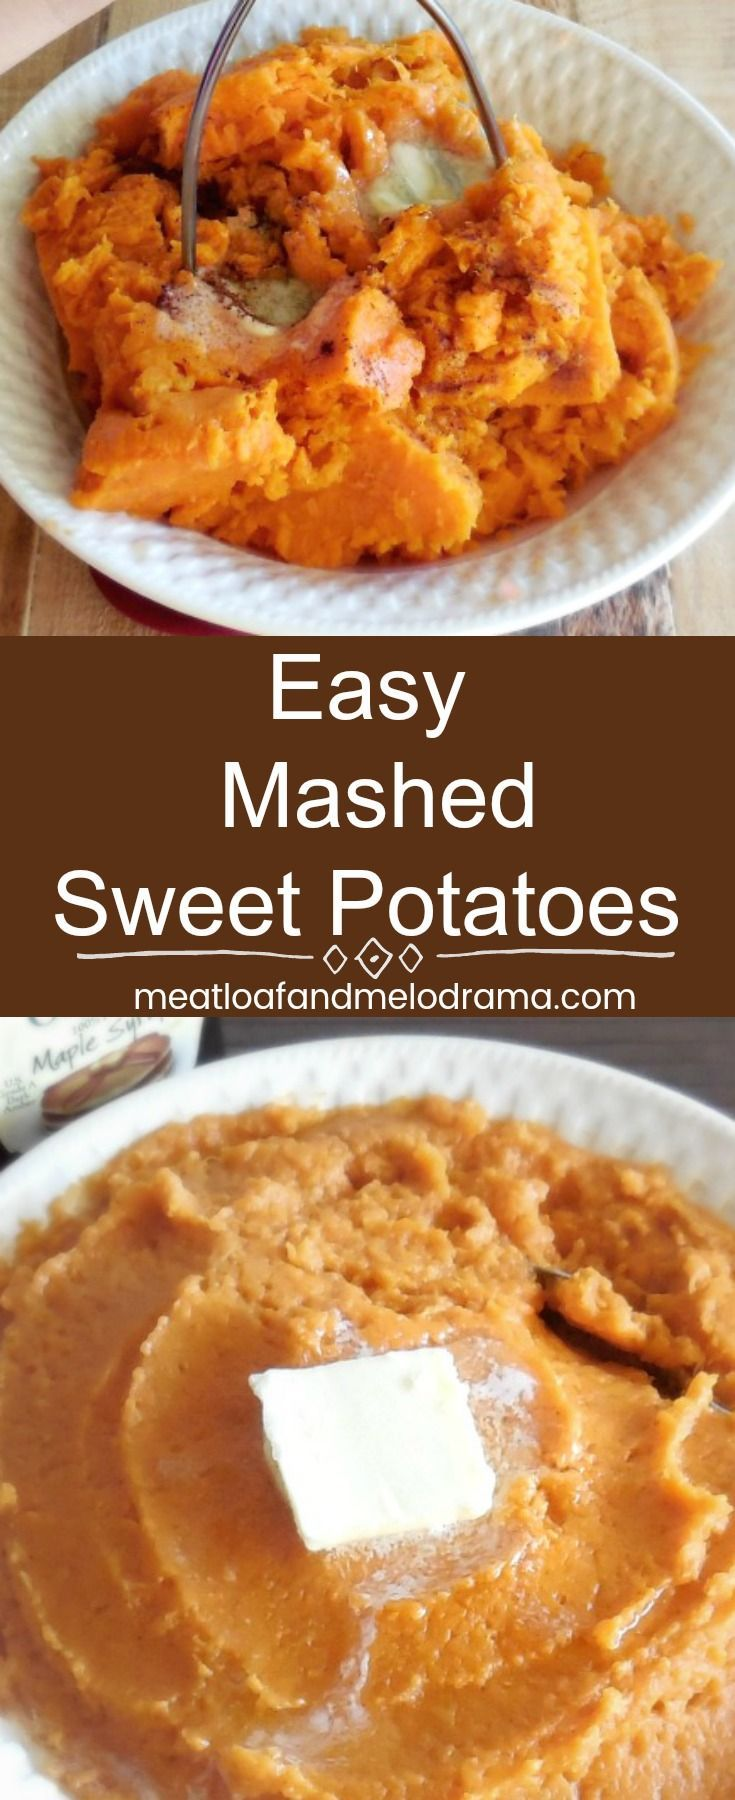 Easy Mashed Sweet Potatoes - Quick and easy side dish for Thanksgiving or any holiday. Flavored with maple syrup and cinnamon, these sweet potatoes always go fast! from Meatloaf and Melodrama #sidedish #ThanksgivingRecipes #holidays